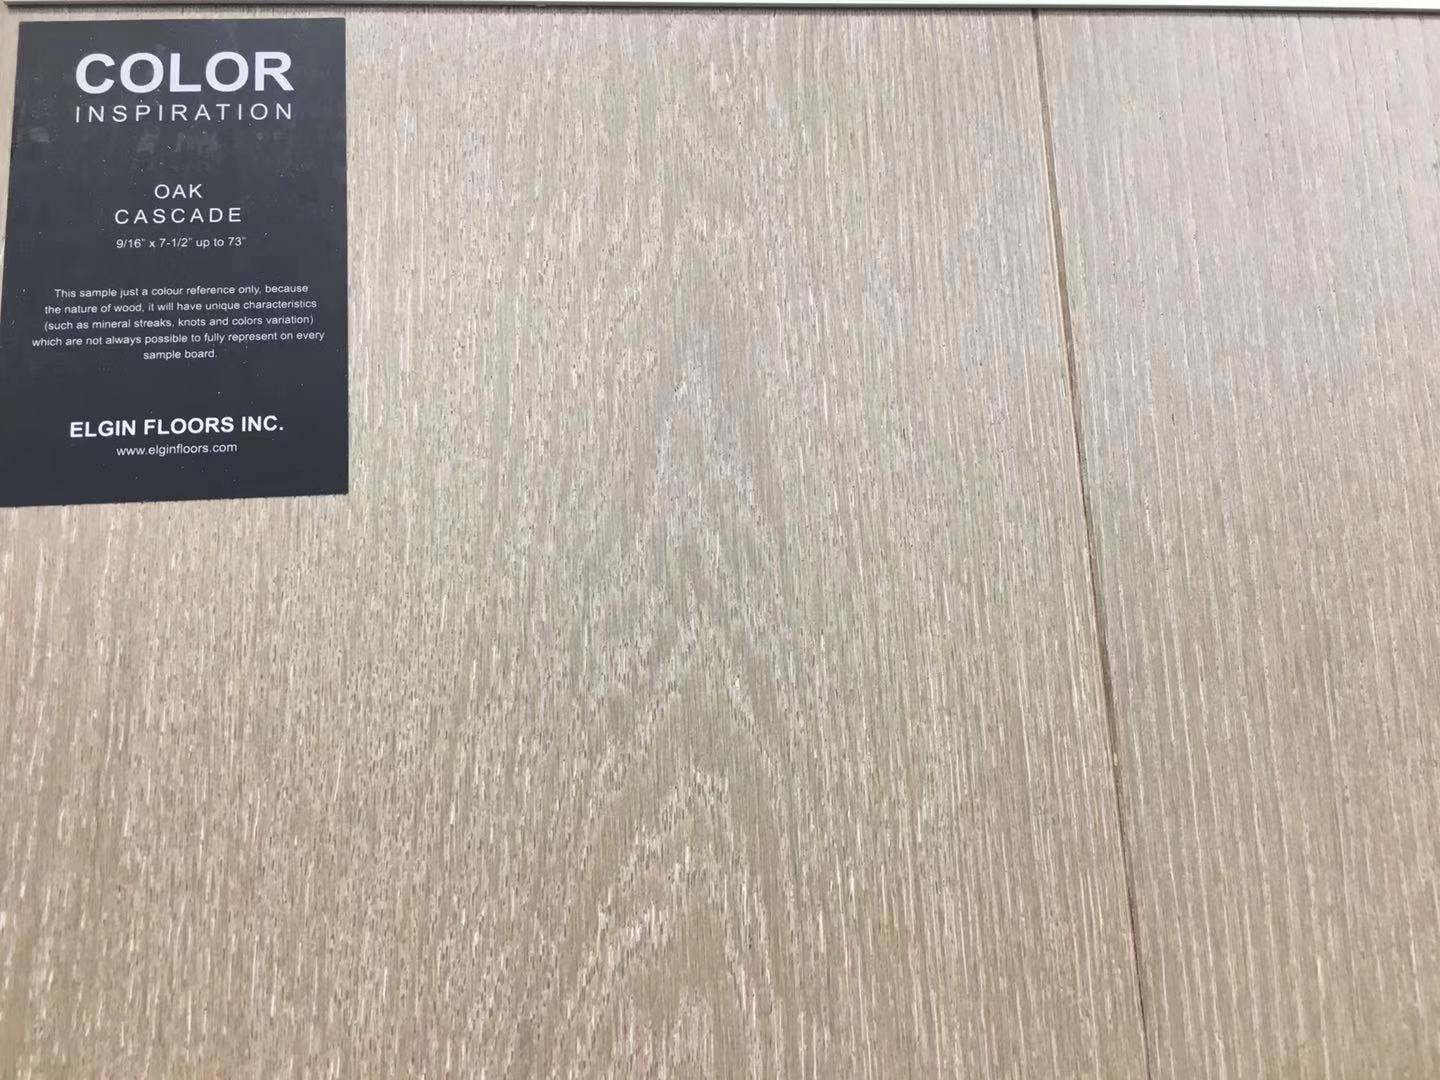 "SPX ORDER 1-2DAYS ENGINEERED HARDWOOD 7-1/2"" WIDTH 2MM TOP LAYER OAK CASCADE $4.26/SF 23.33SF/BOX $99.49/BOX - Home Idol Home Improvement Outlet"